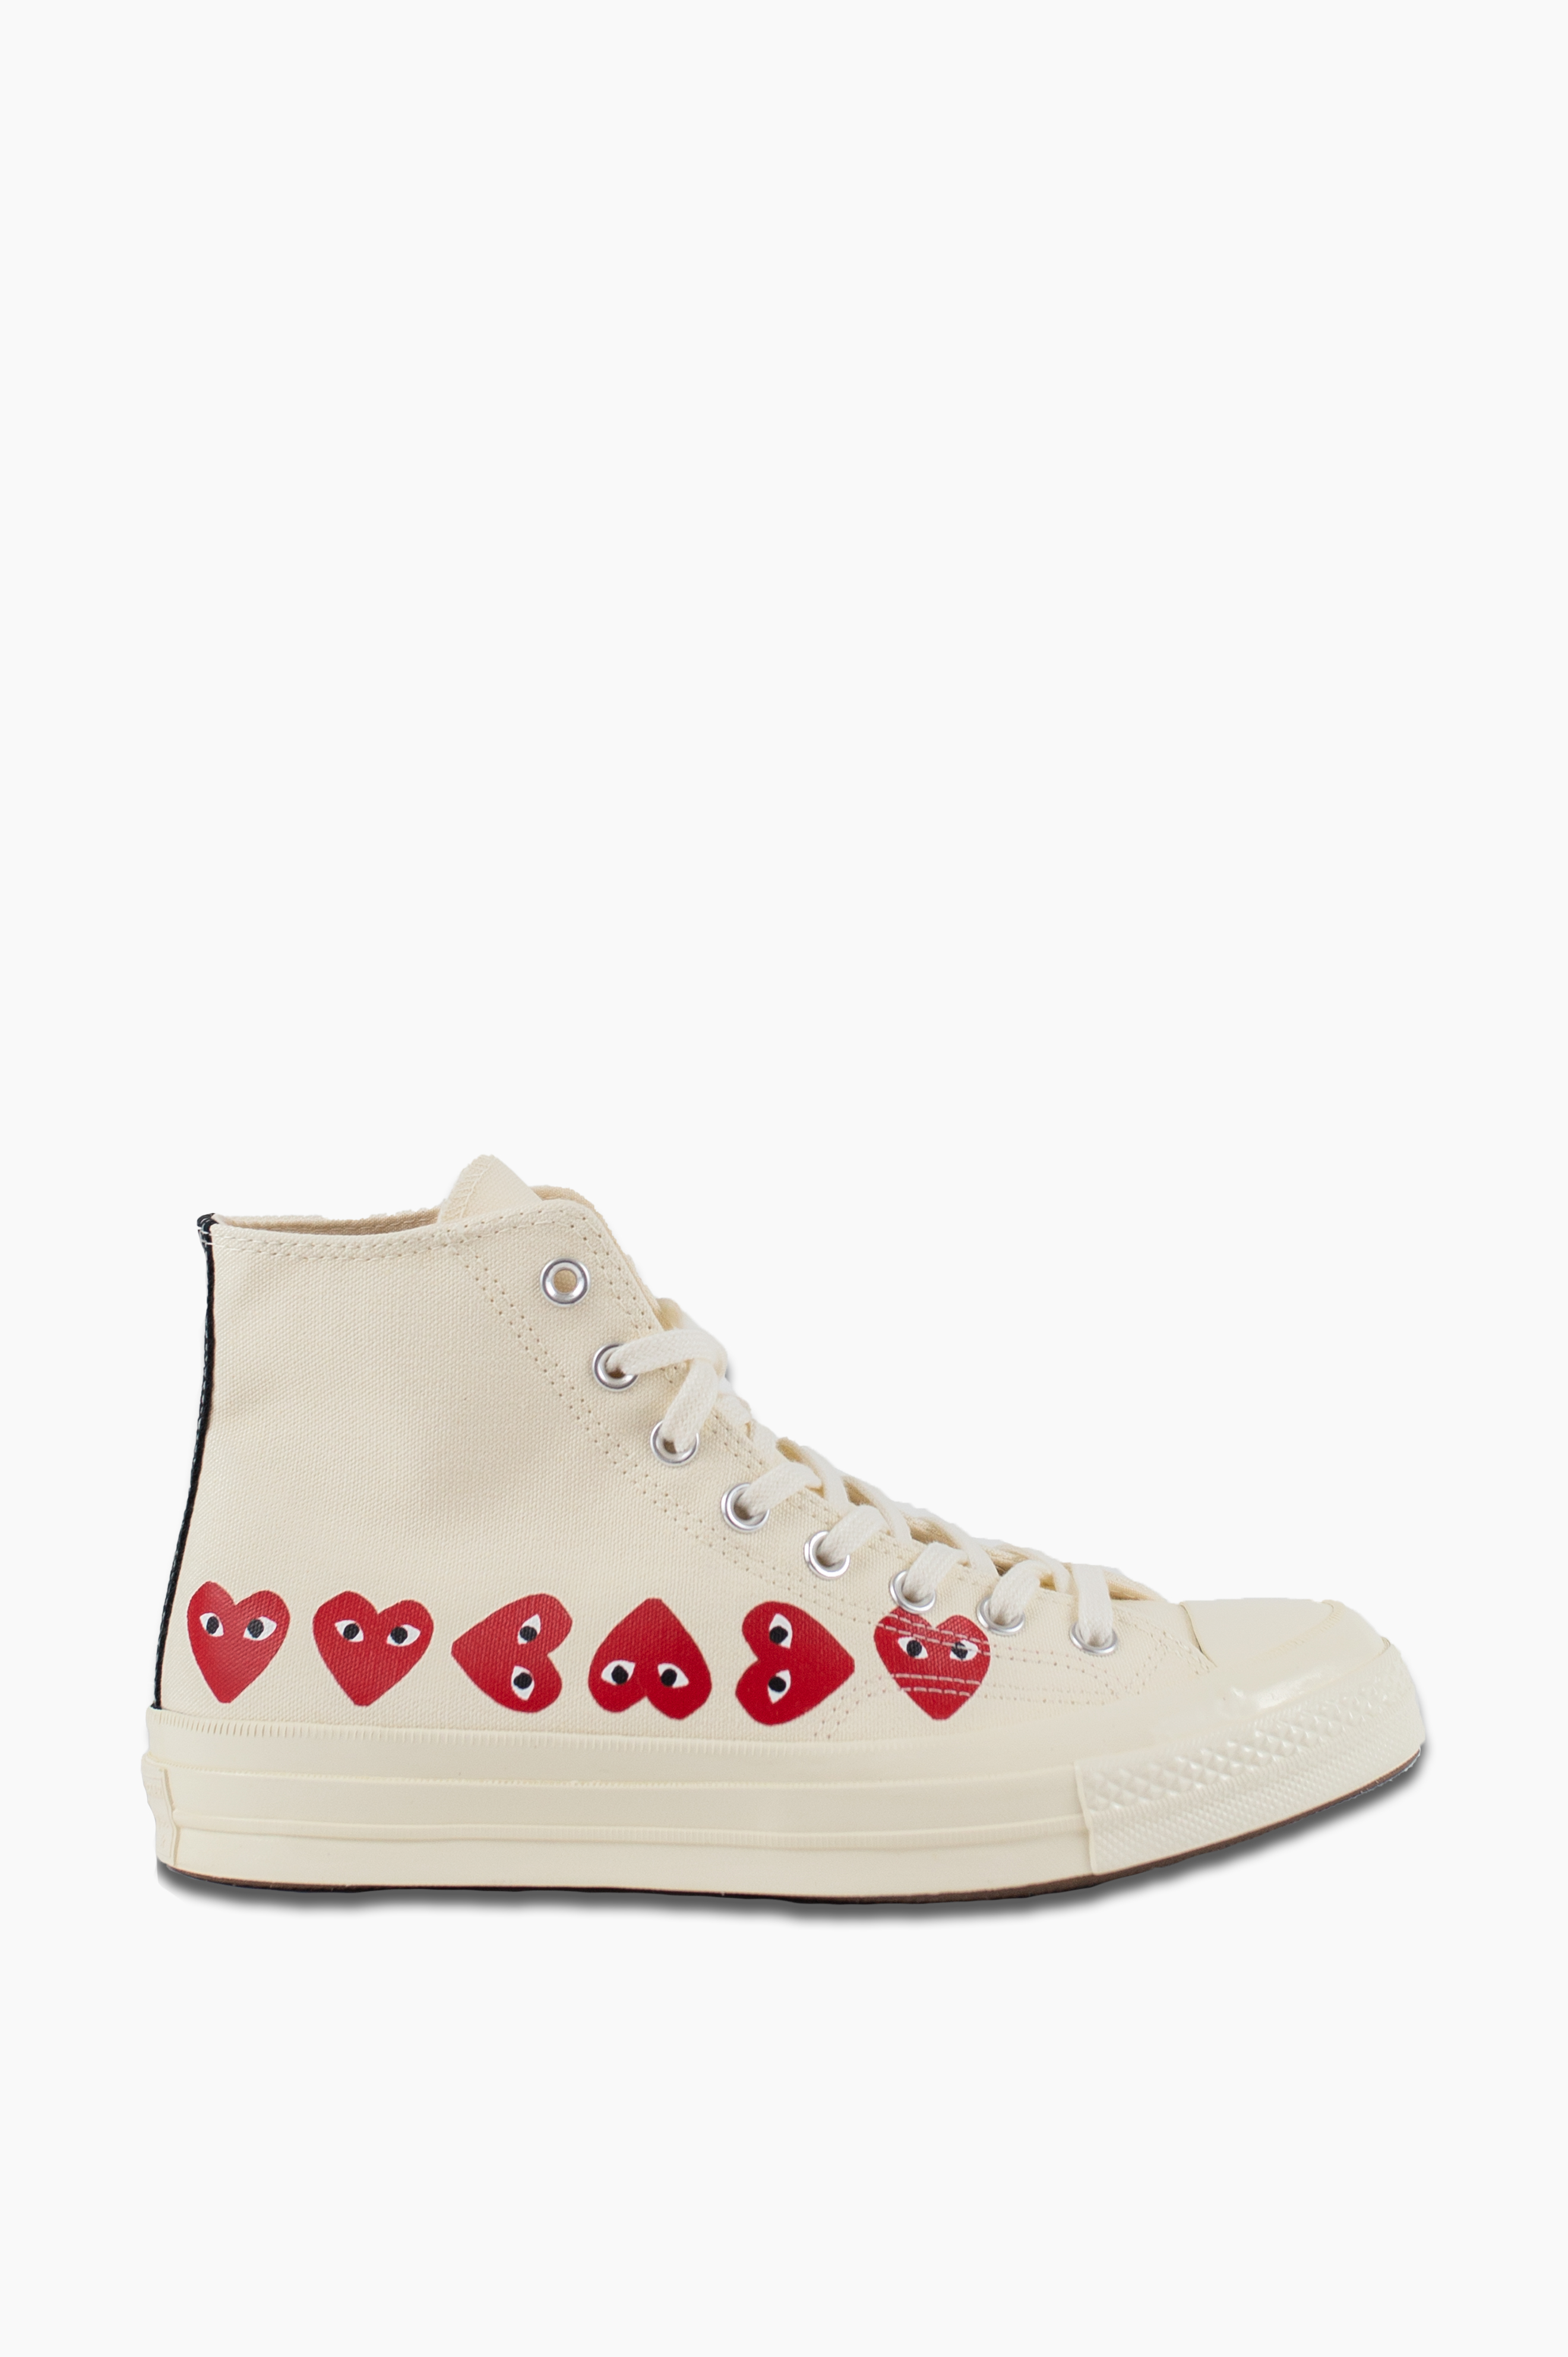 Converse Chuck Taylor All Star '70 High Off White Multy Heart